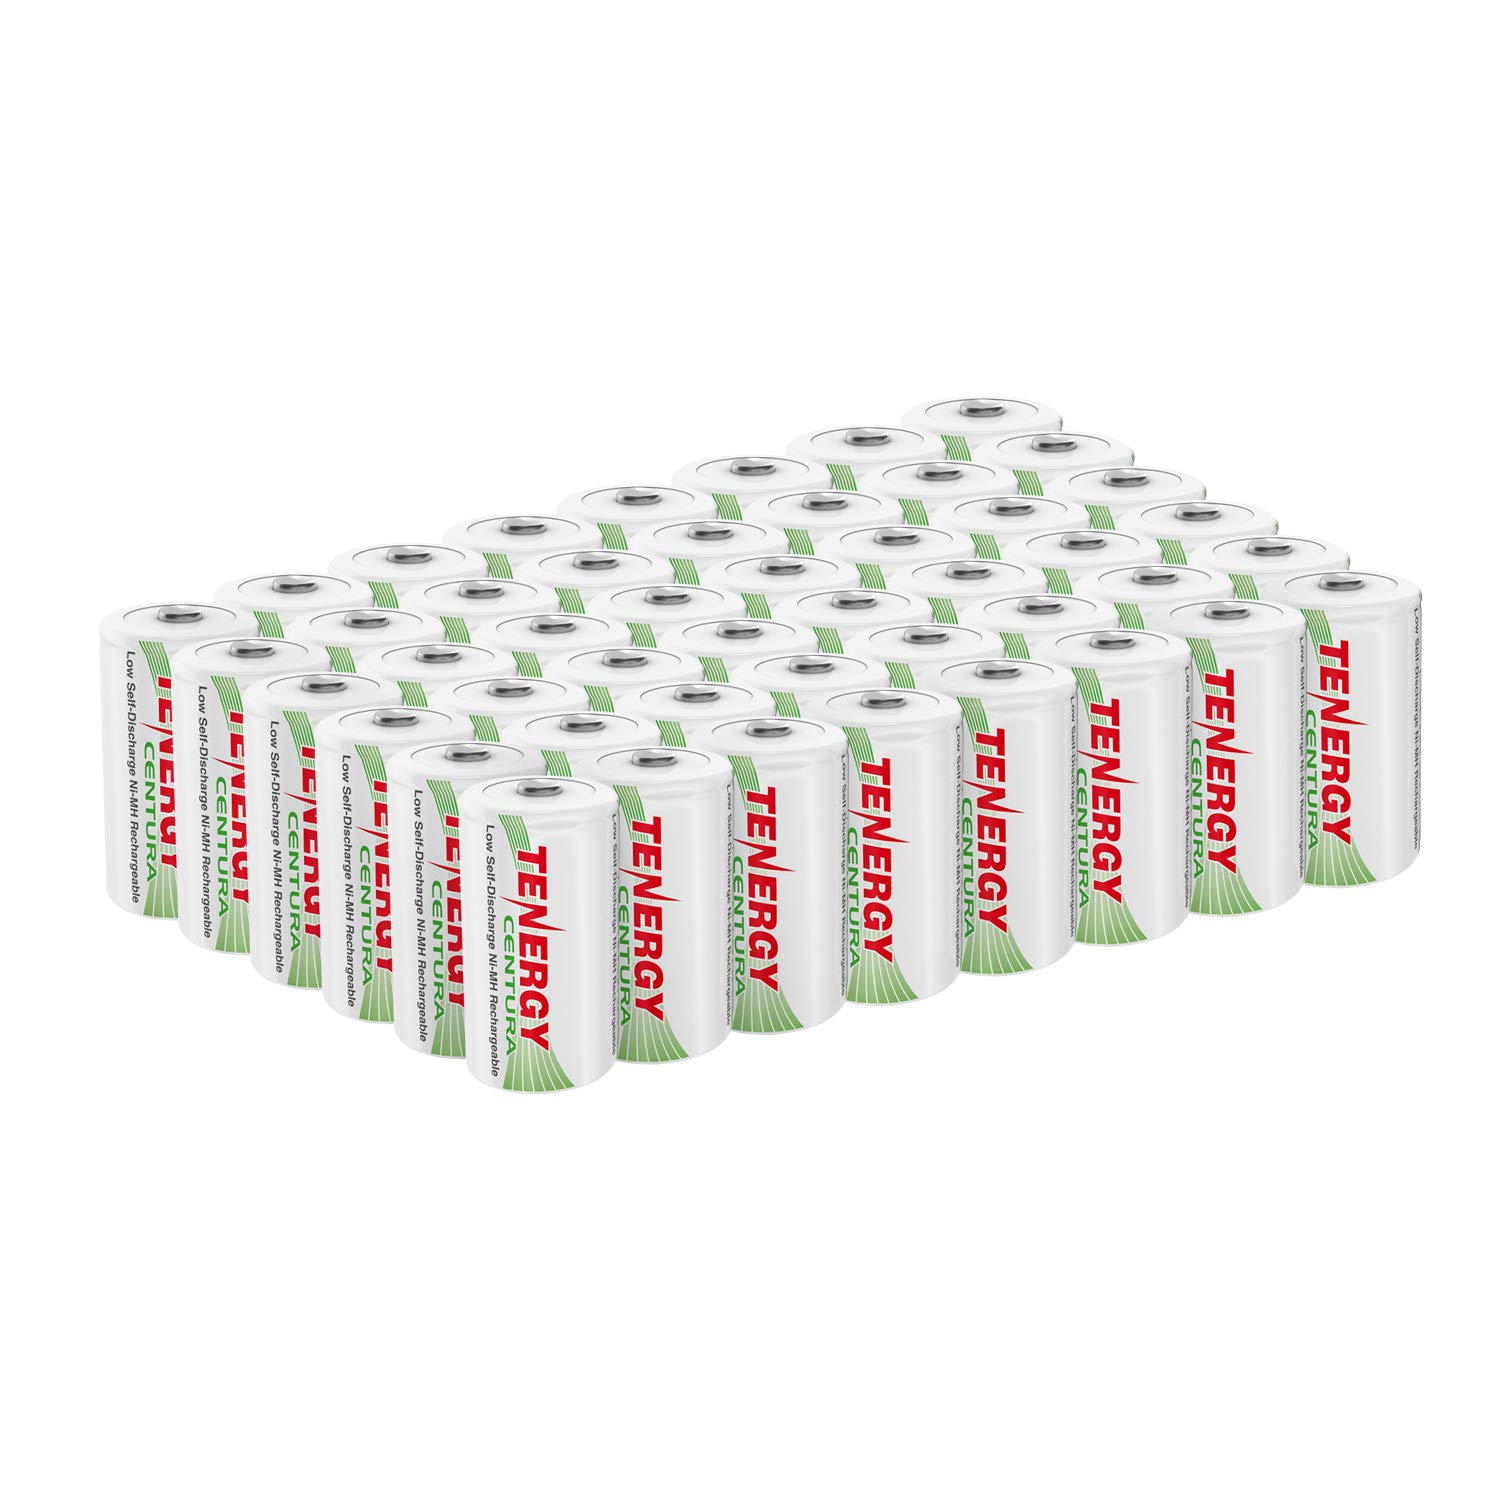 Tenergy Centura NiMH Rechargeable C Batteries, 4000mAh C Battery, Low Self Discharge C Cell Battery, Pre-Charged C Size Battery, 48 Pcs